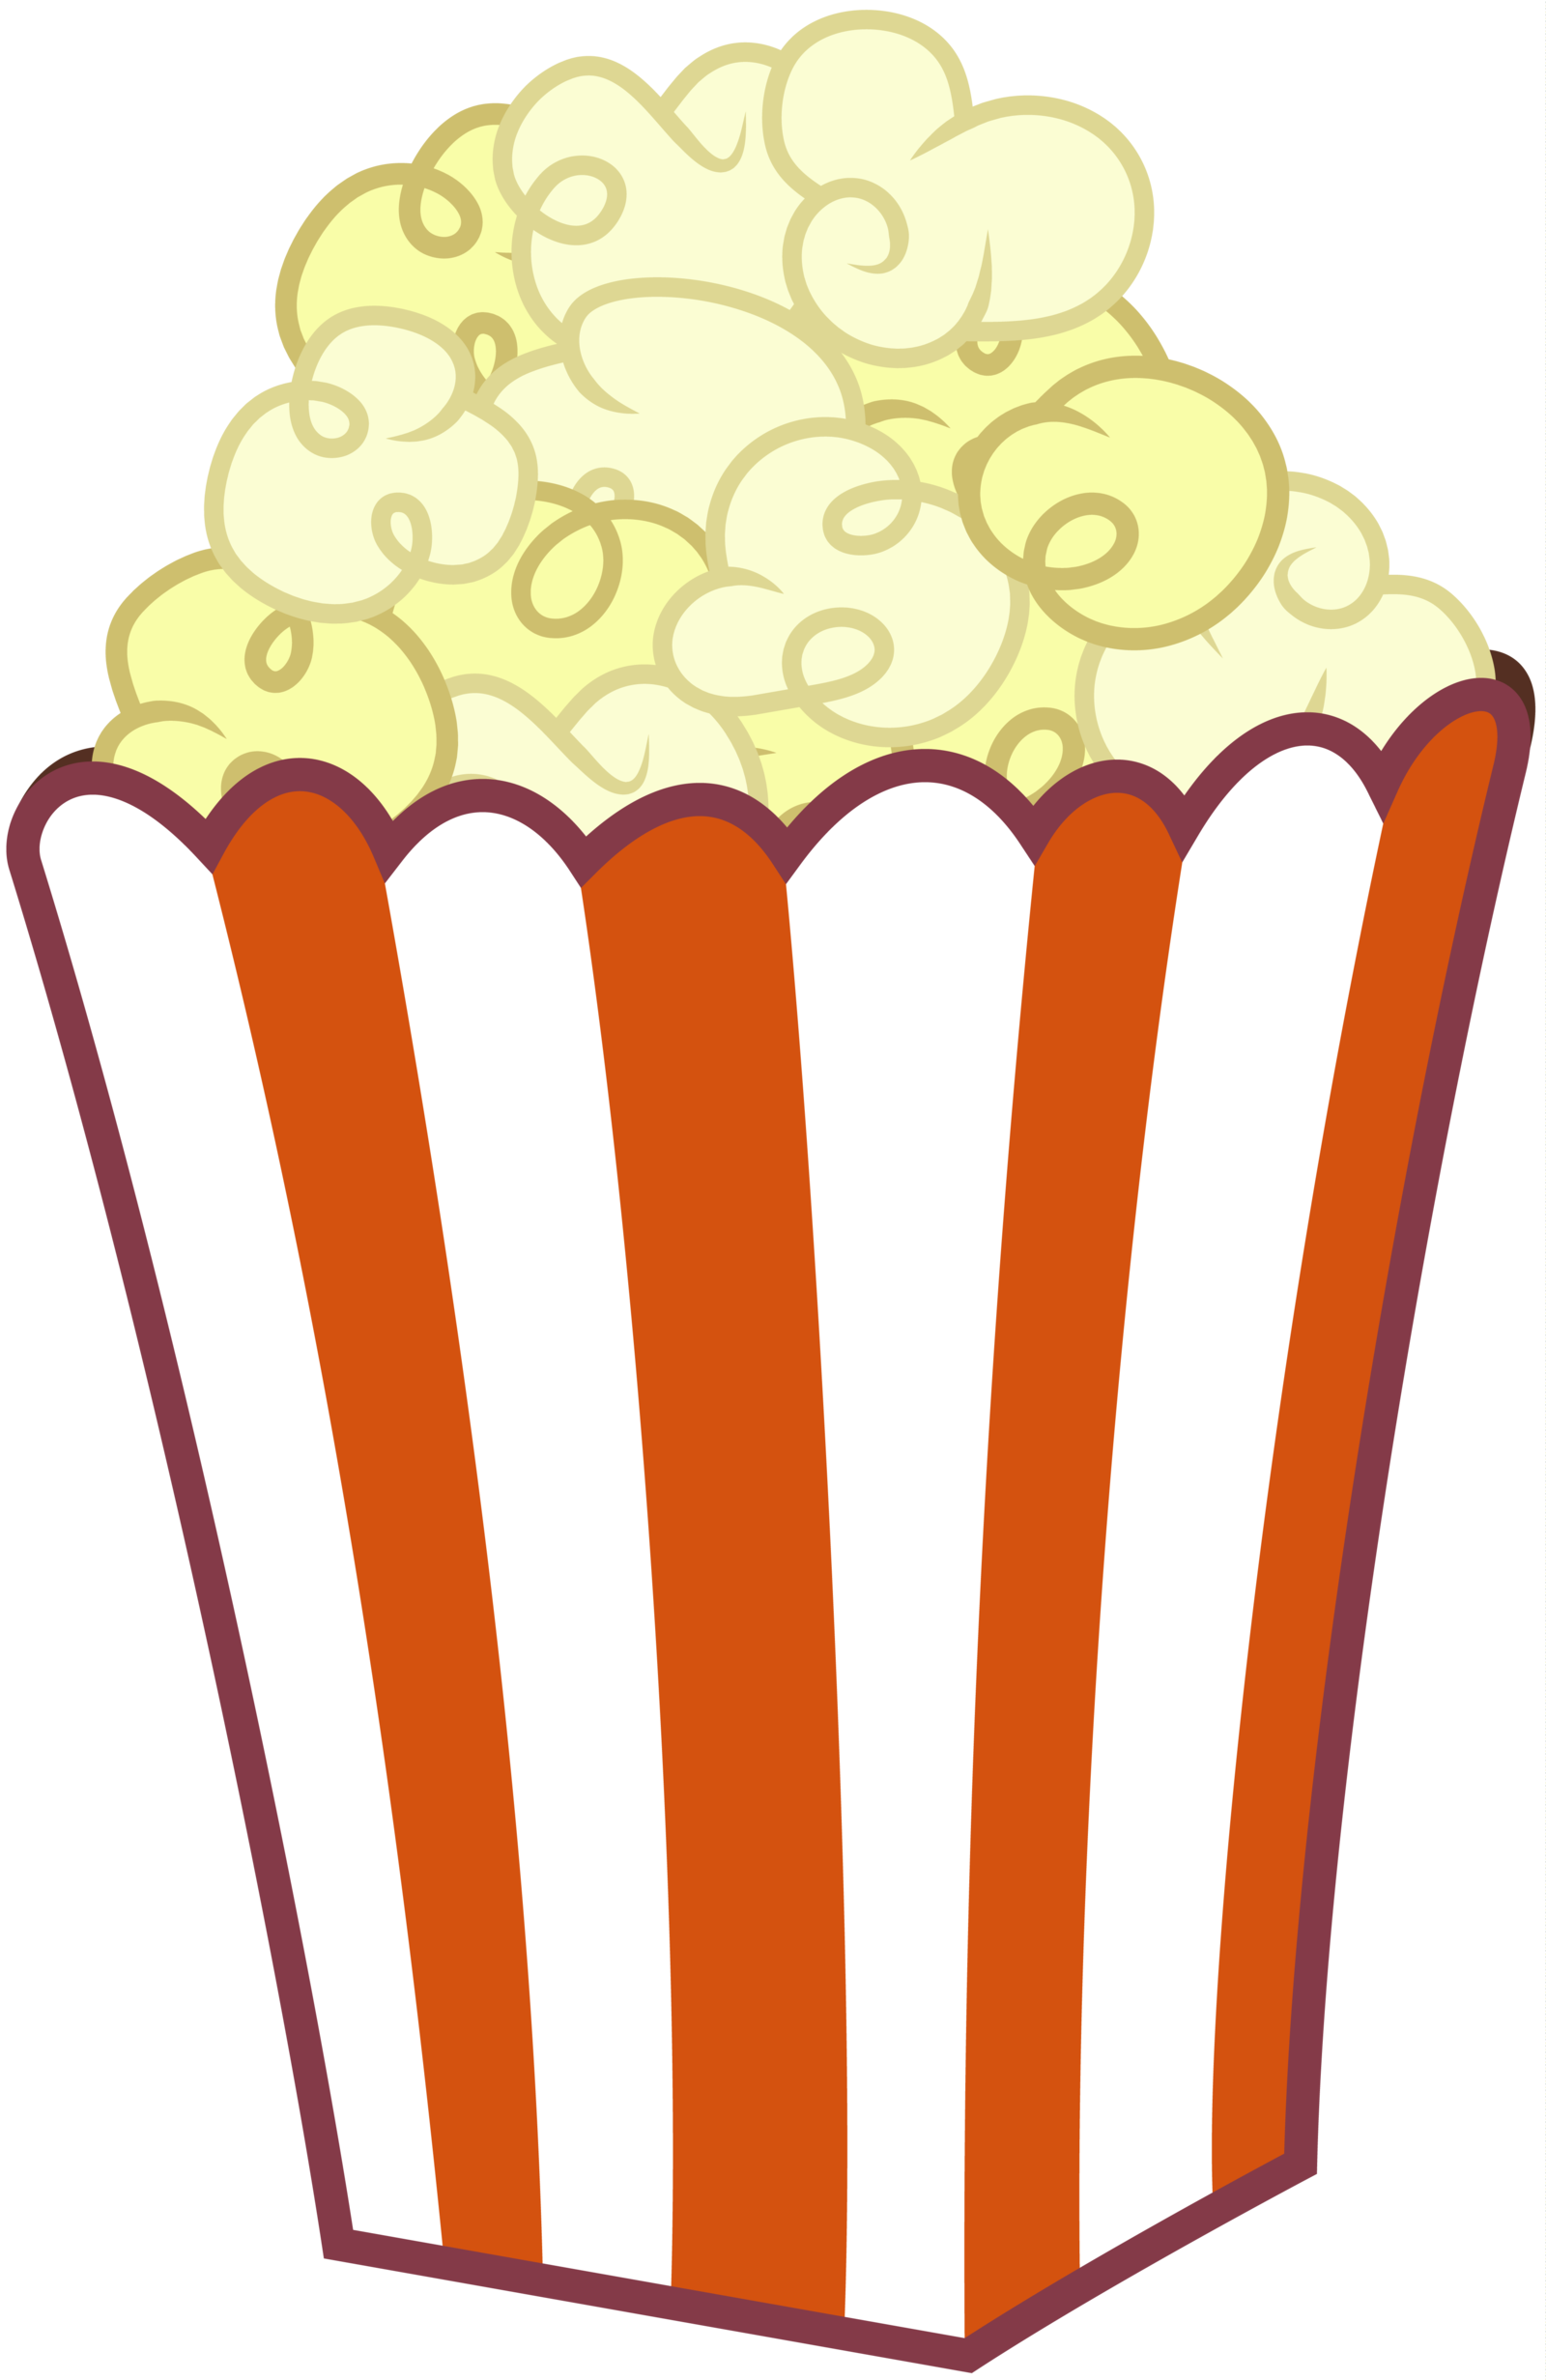 Popcorn Bag Clipart - Clipart Kid